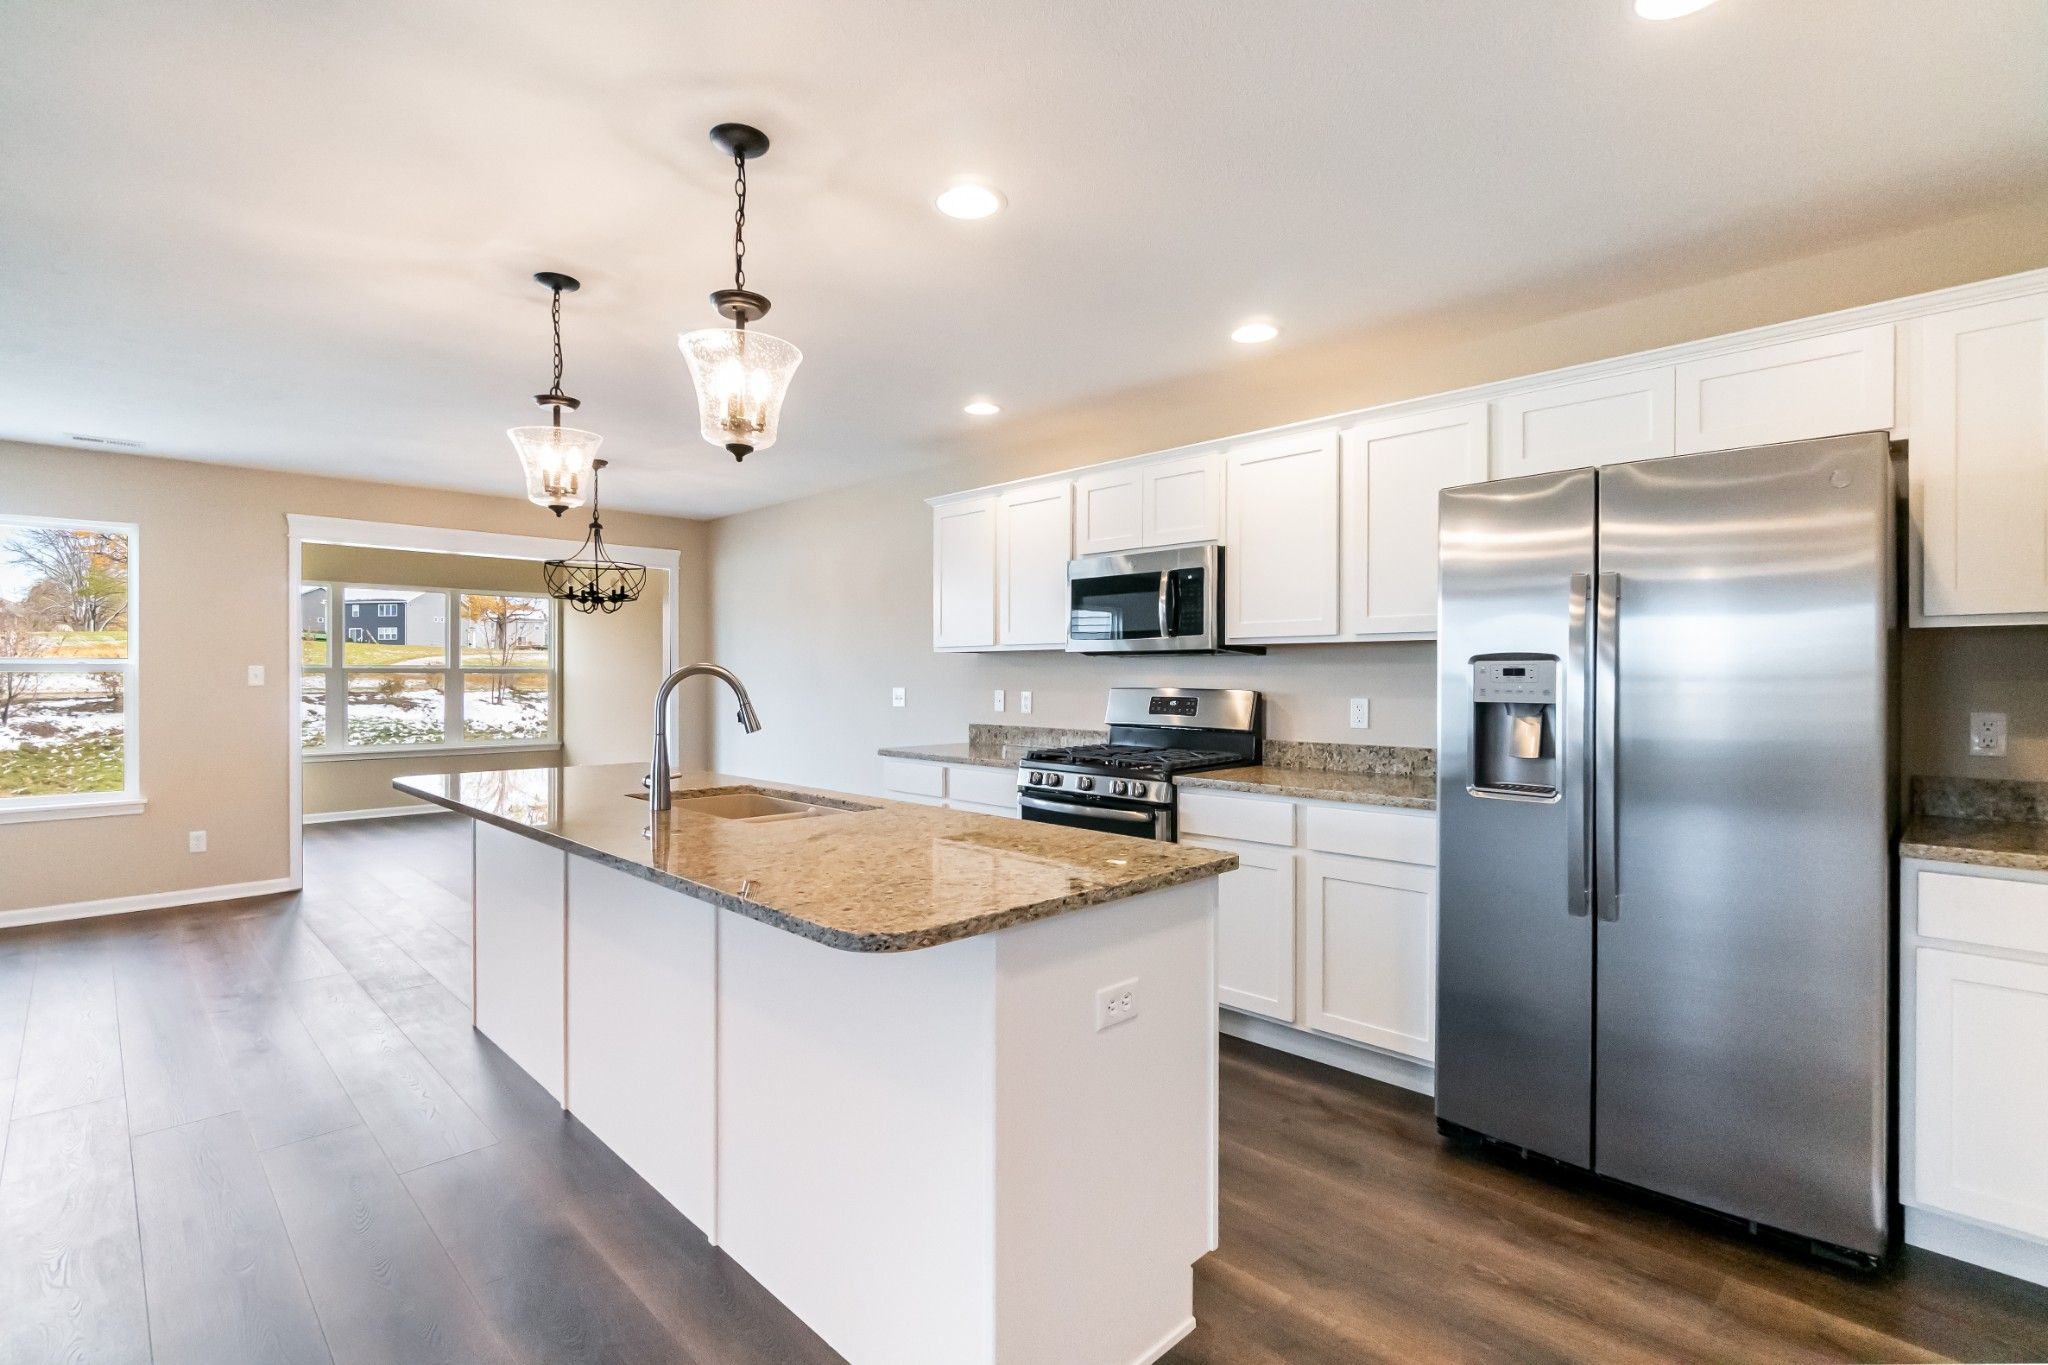 Kitchen featured in the Brighton By Olthof Homes in Gary, IN